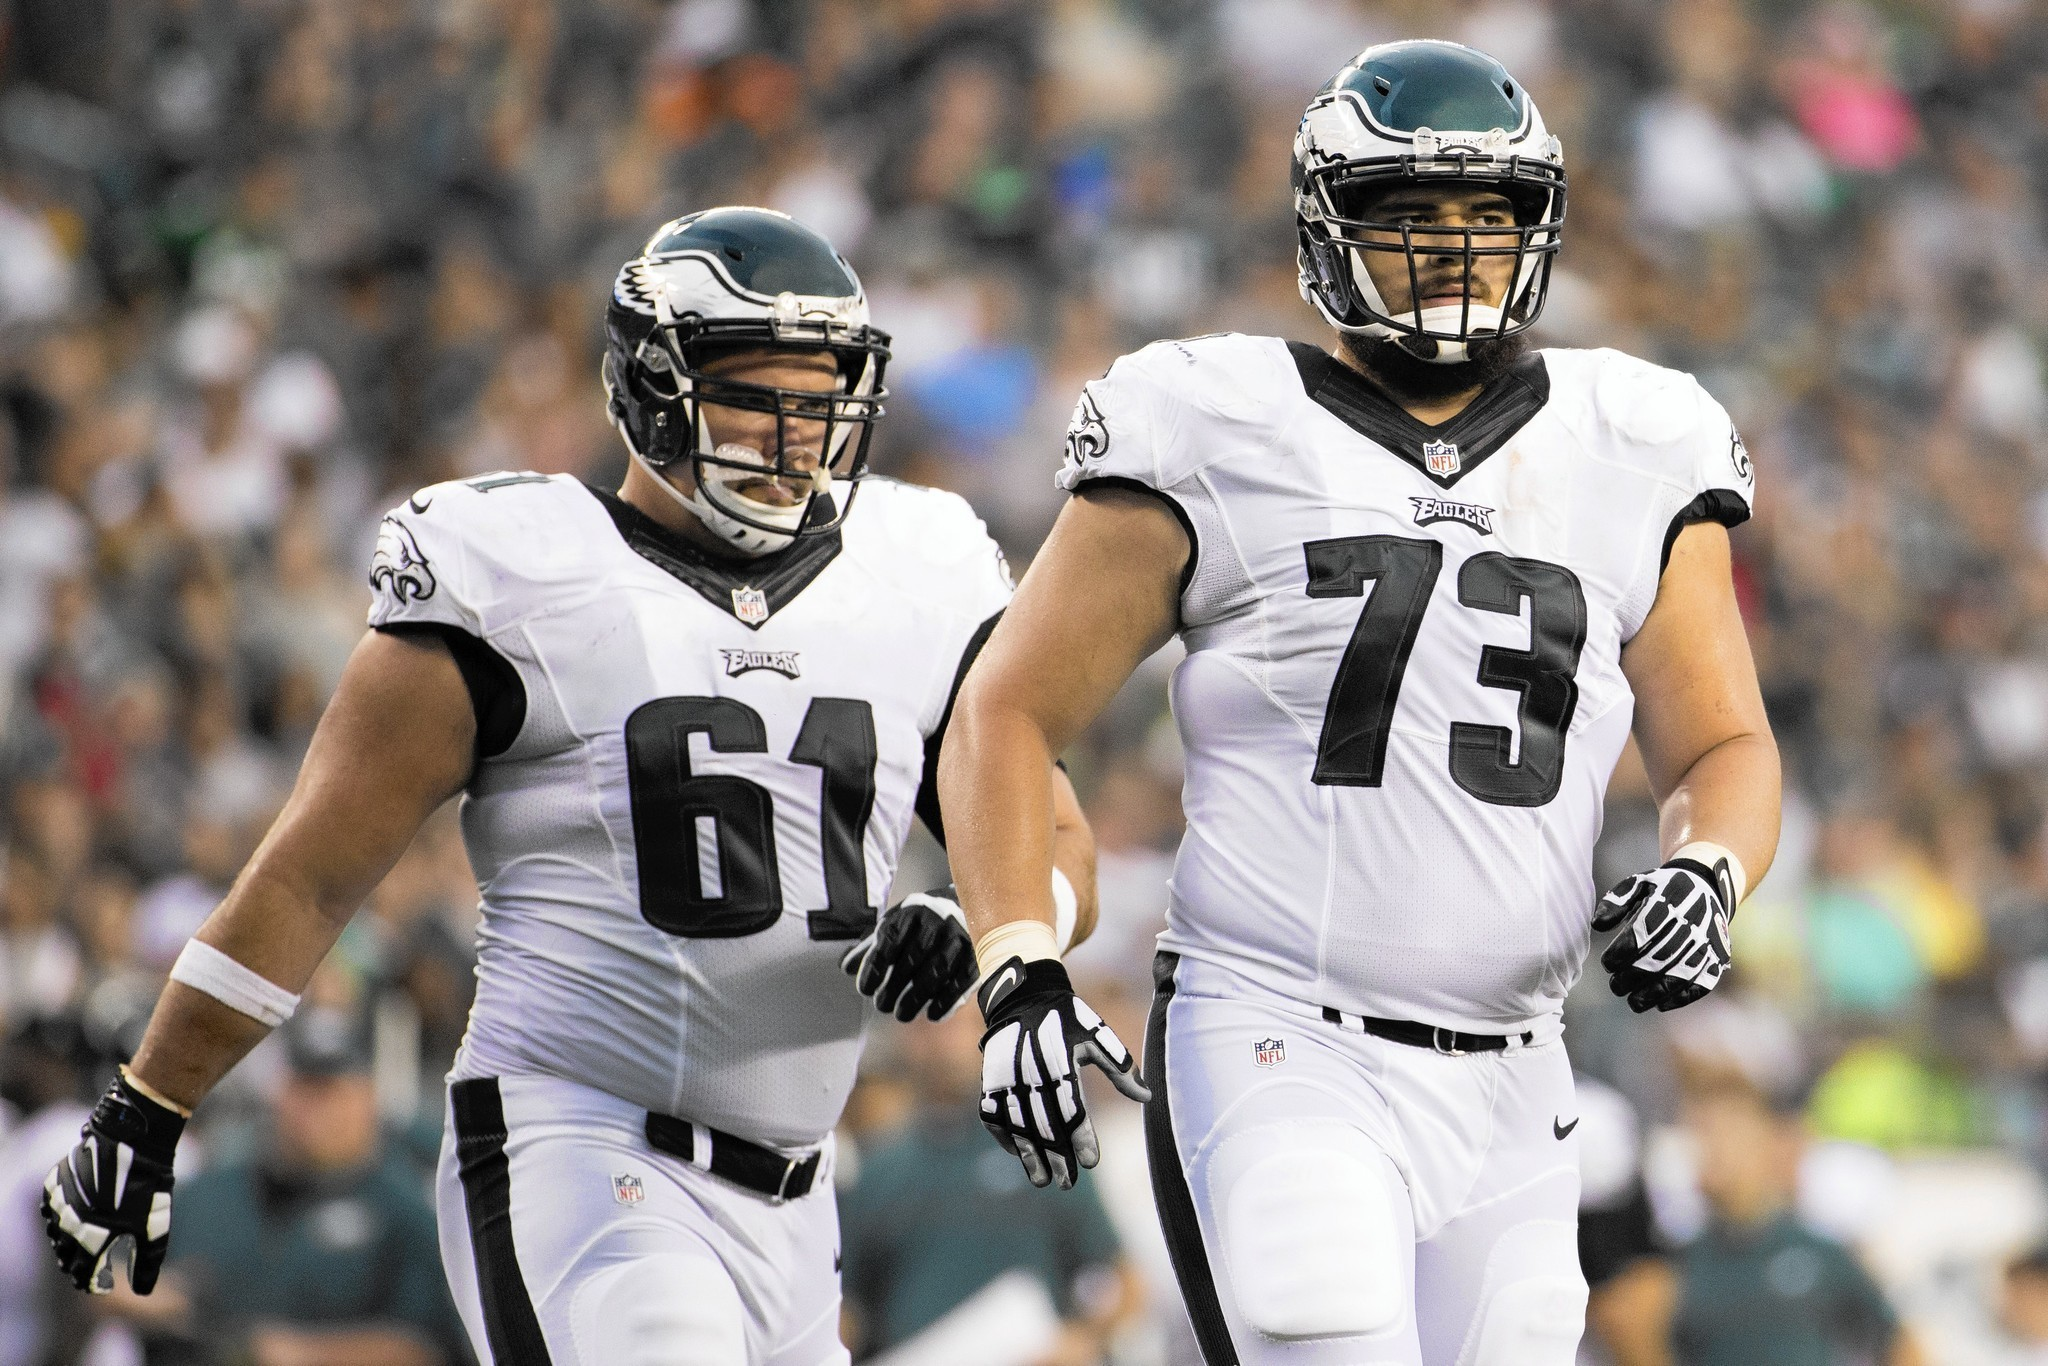 Mc-eagles-offensive-line-woes-continue-0824-20160824